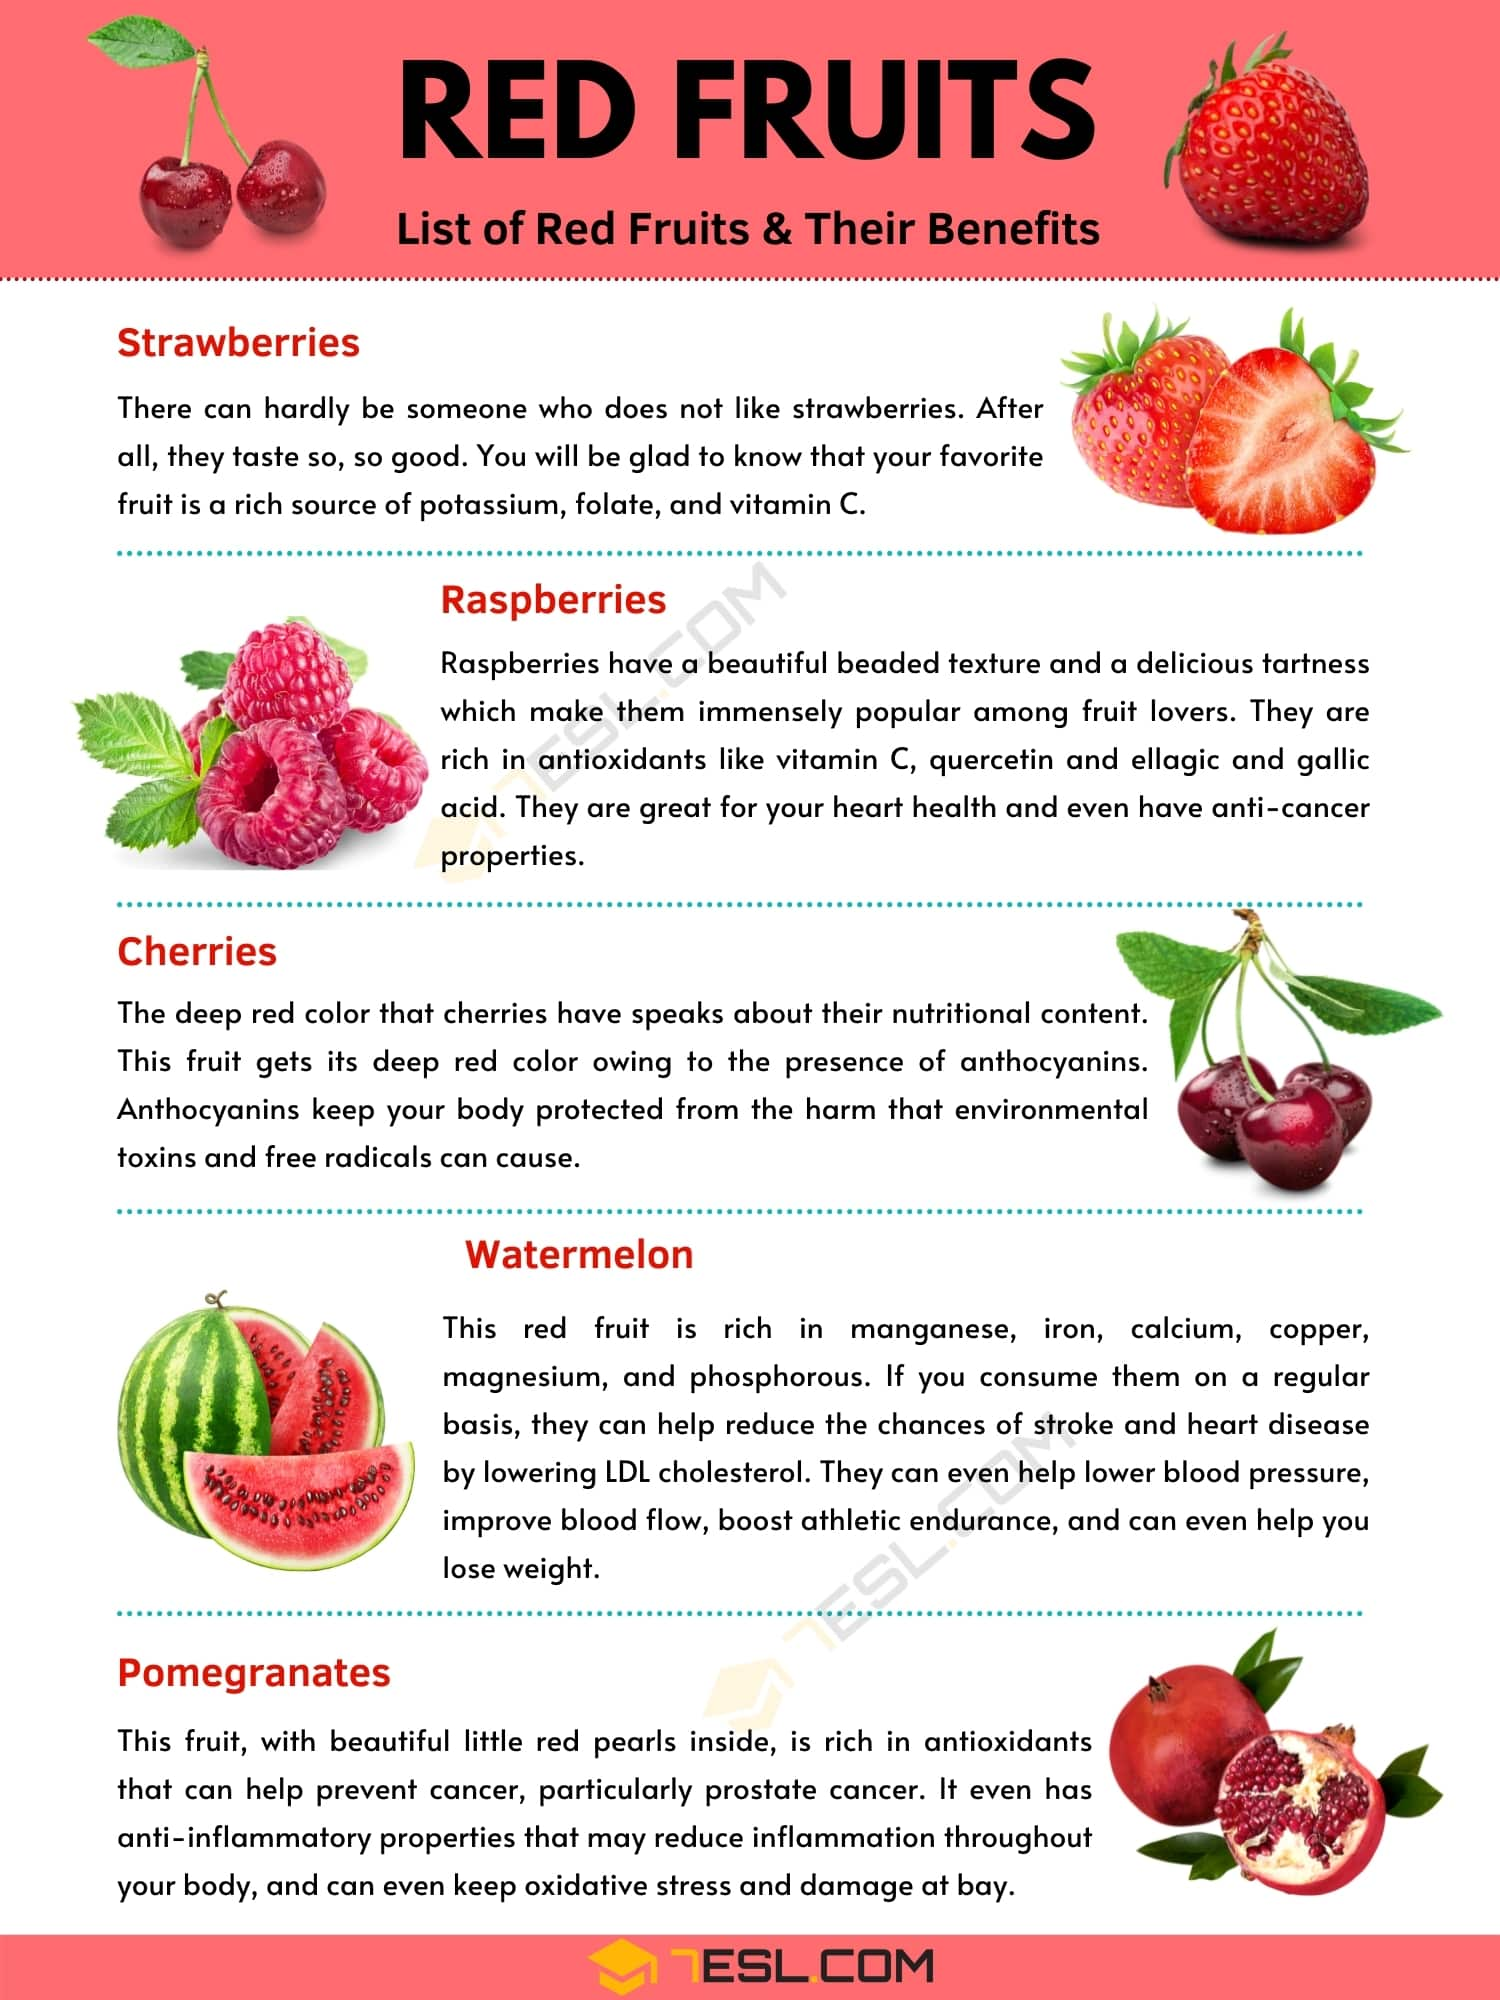 Red fruits: Top 5 Healthy Red Fruits and Their Benefits